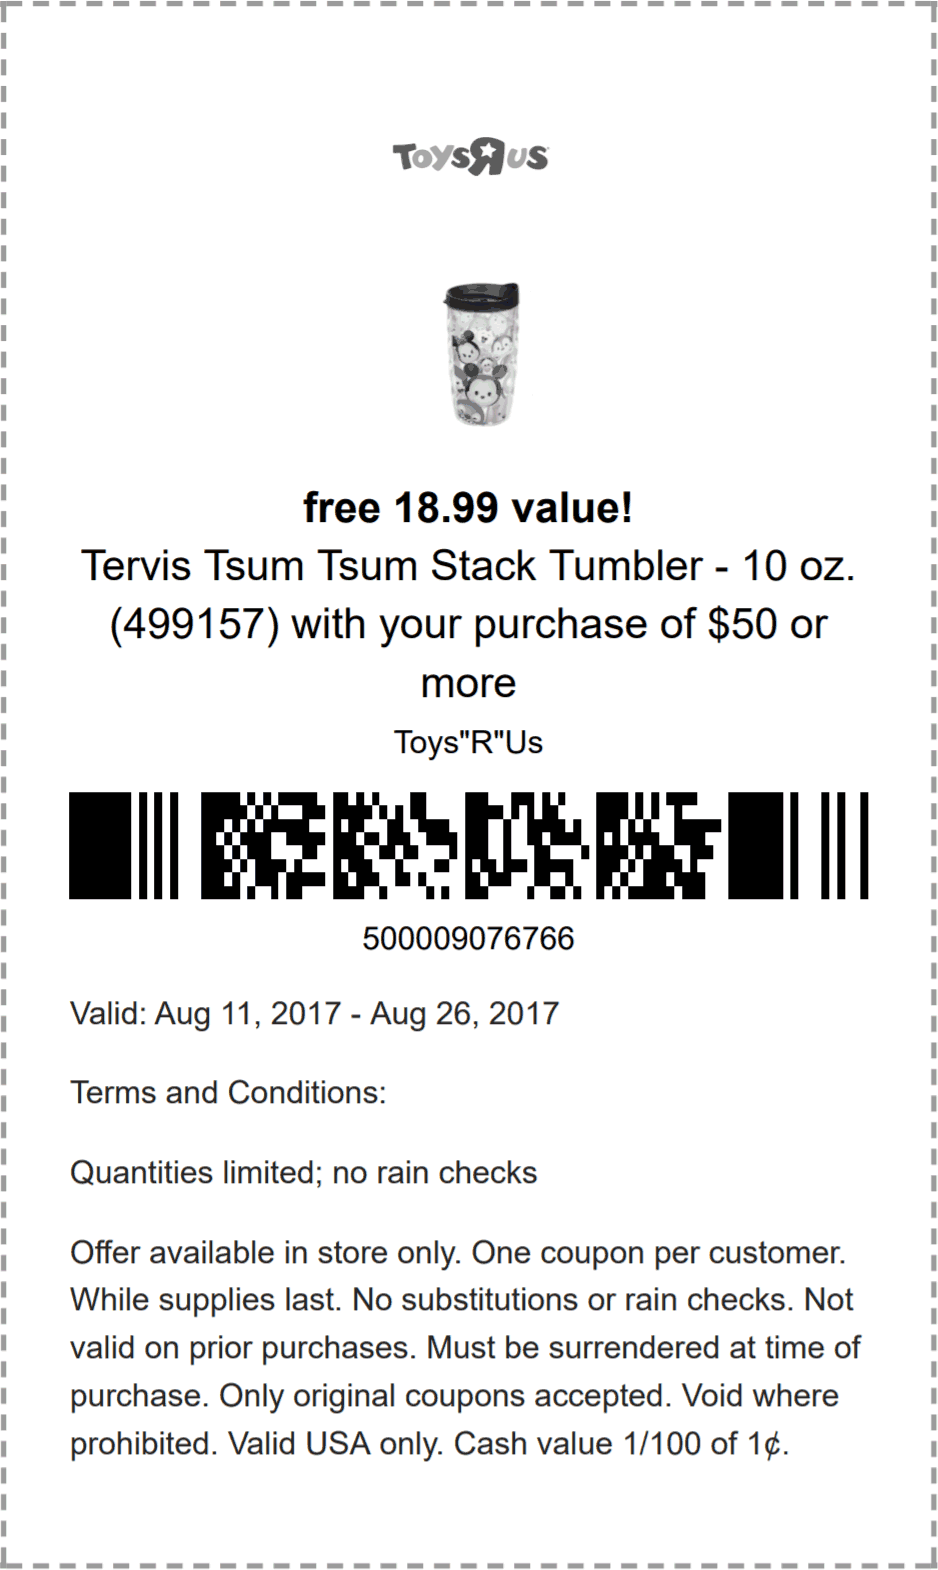 Toys R Us Coupon July 2018 $19 Tervis tumbler free with $50 spent at Toys R Us